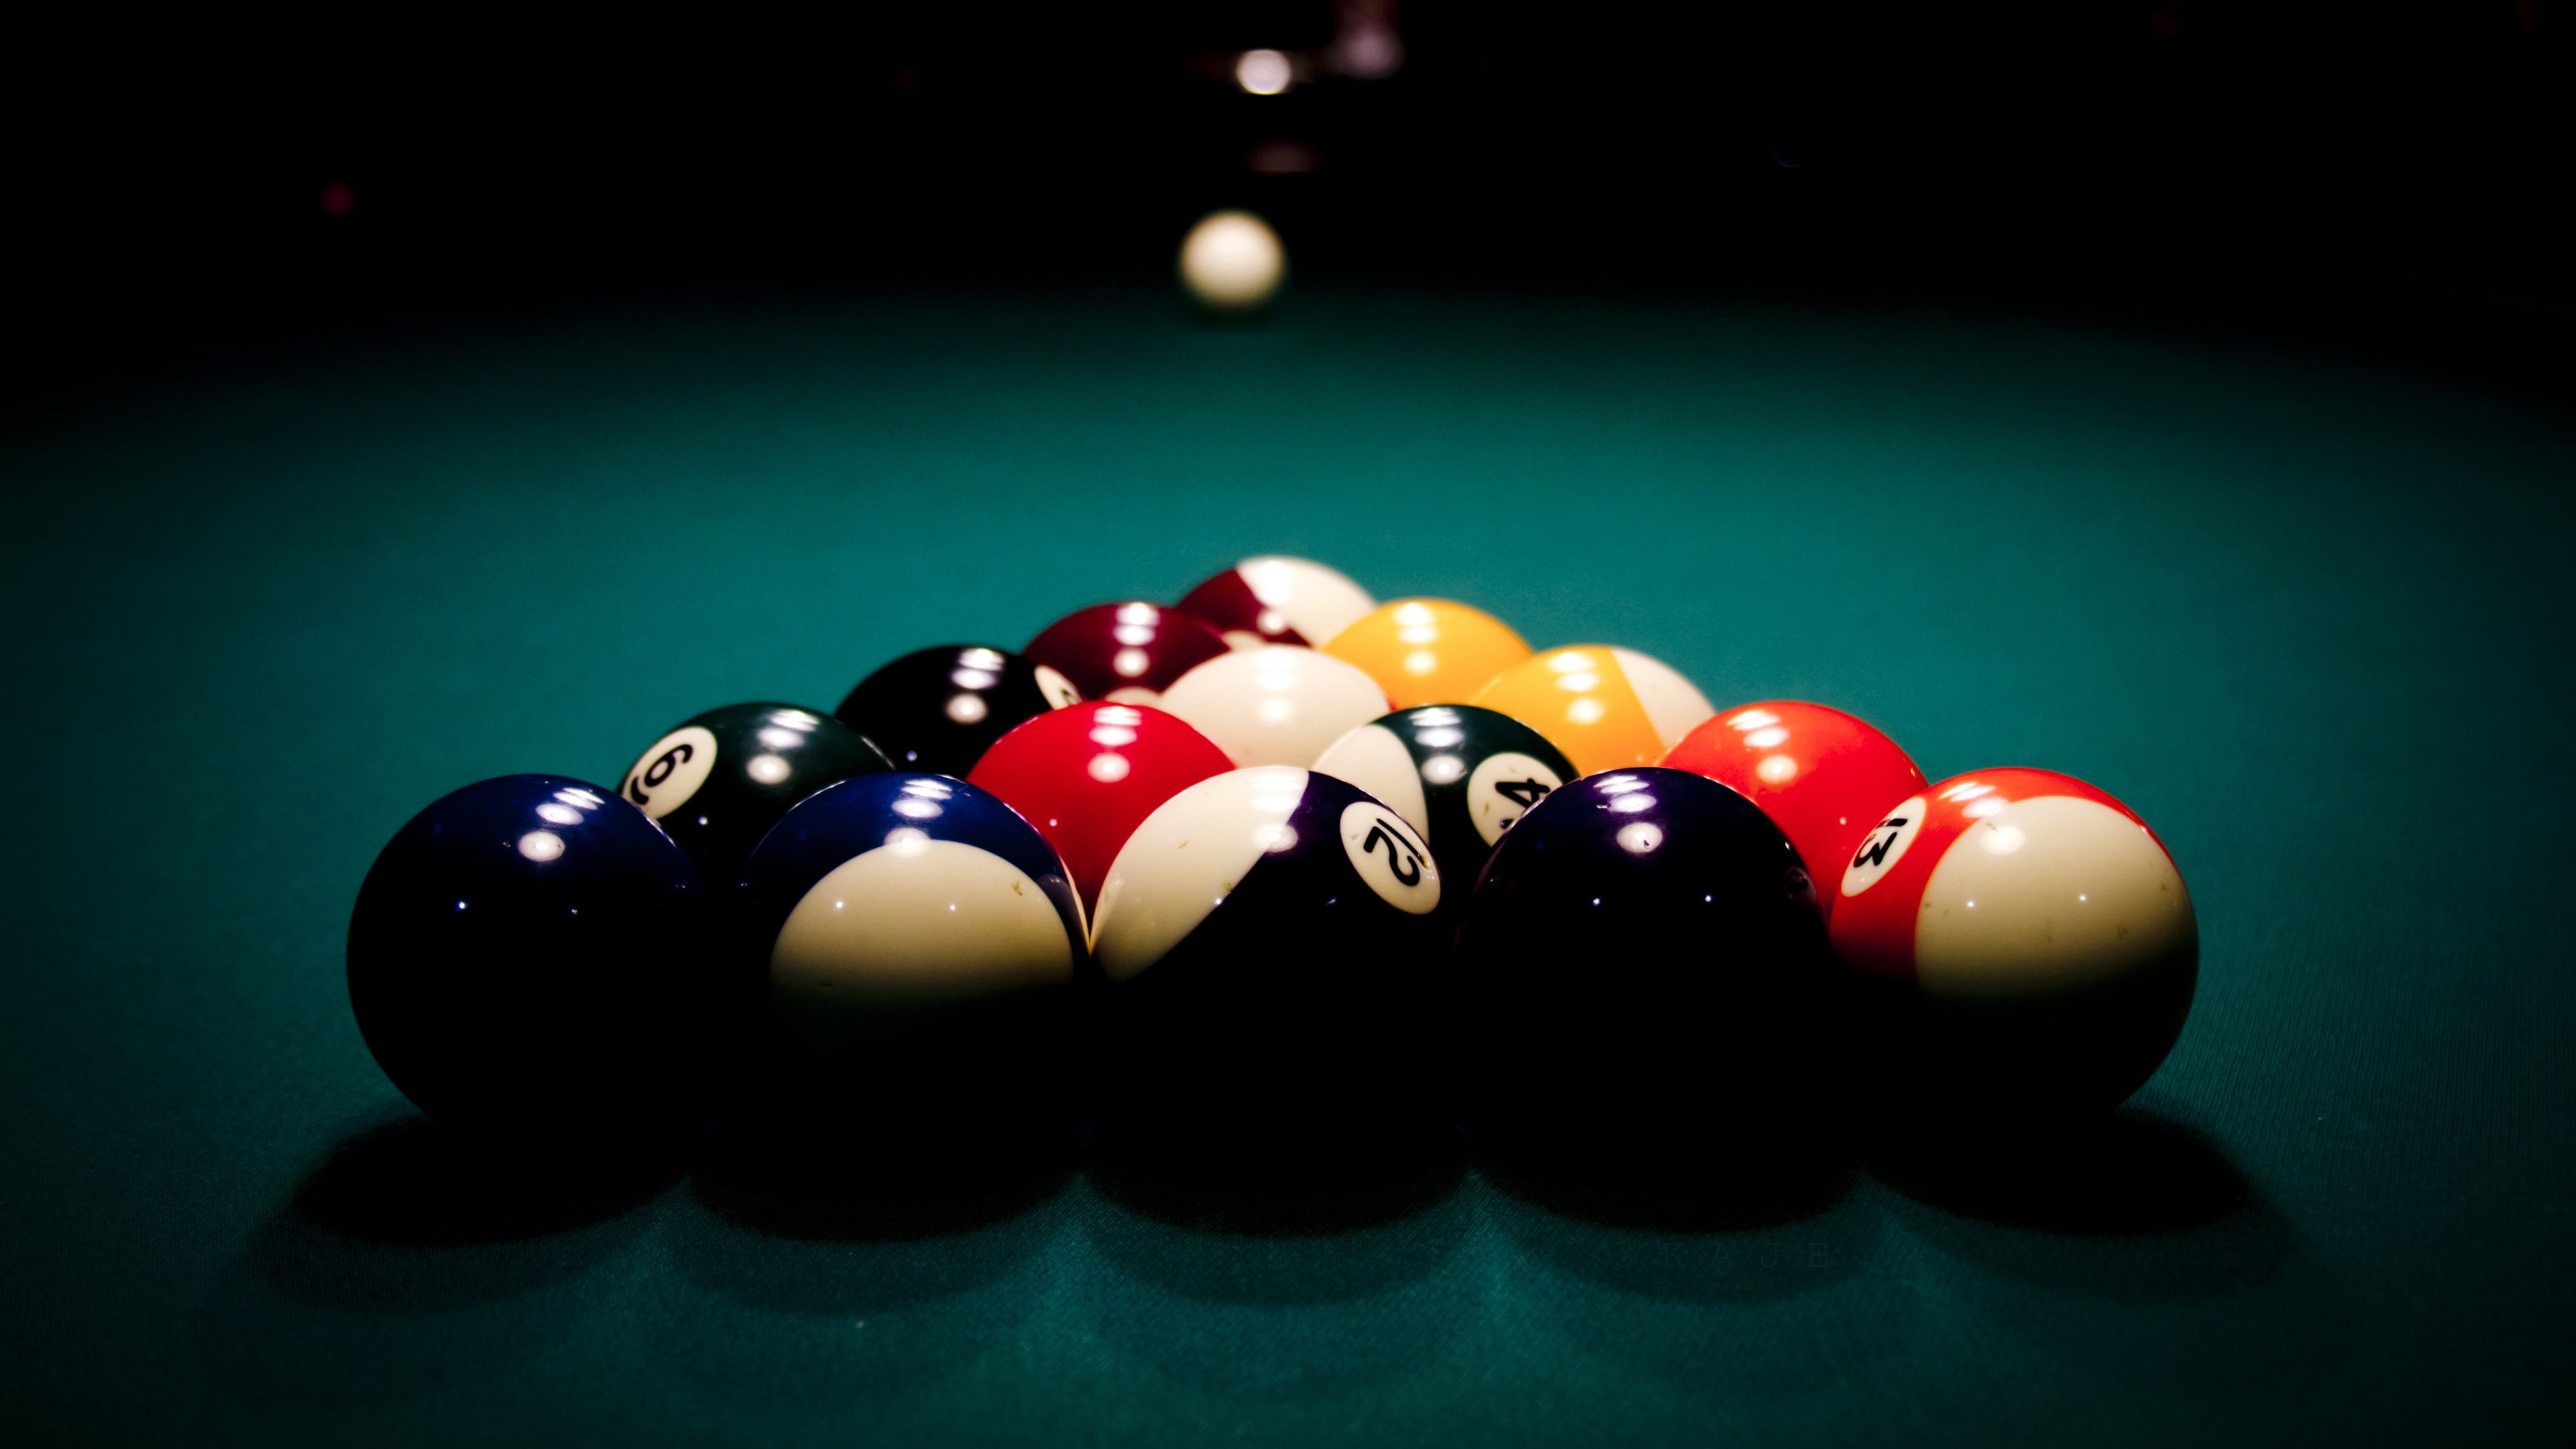 billiard or pool